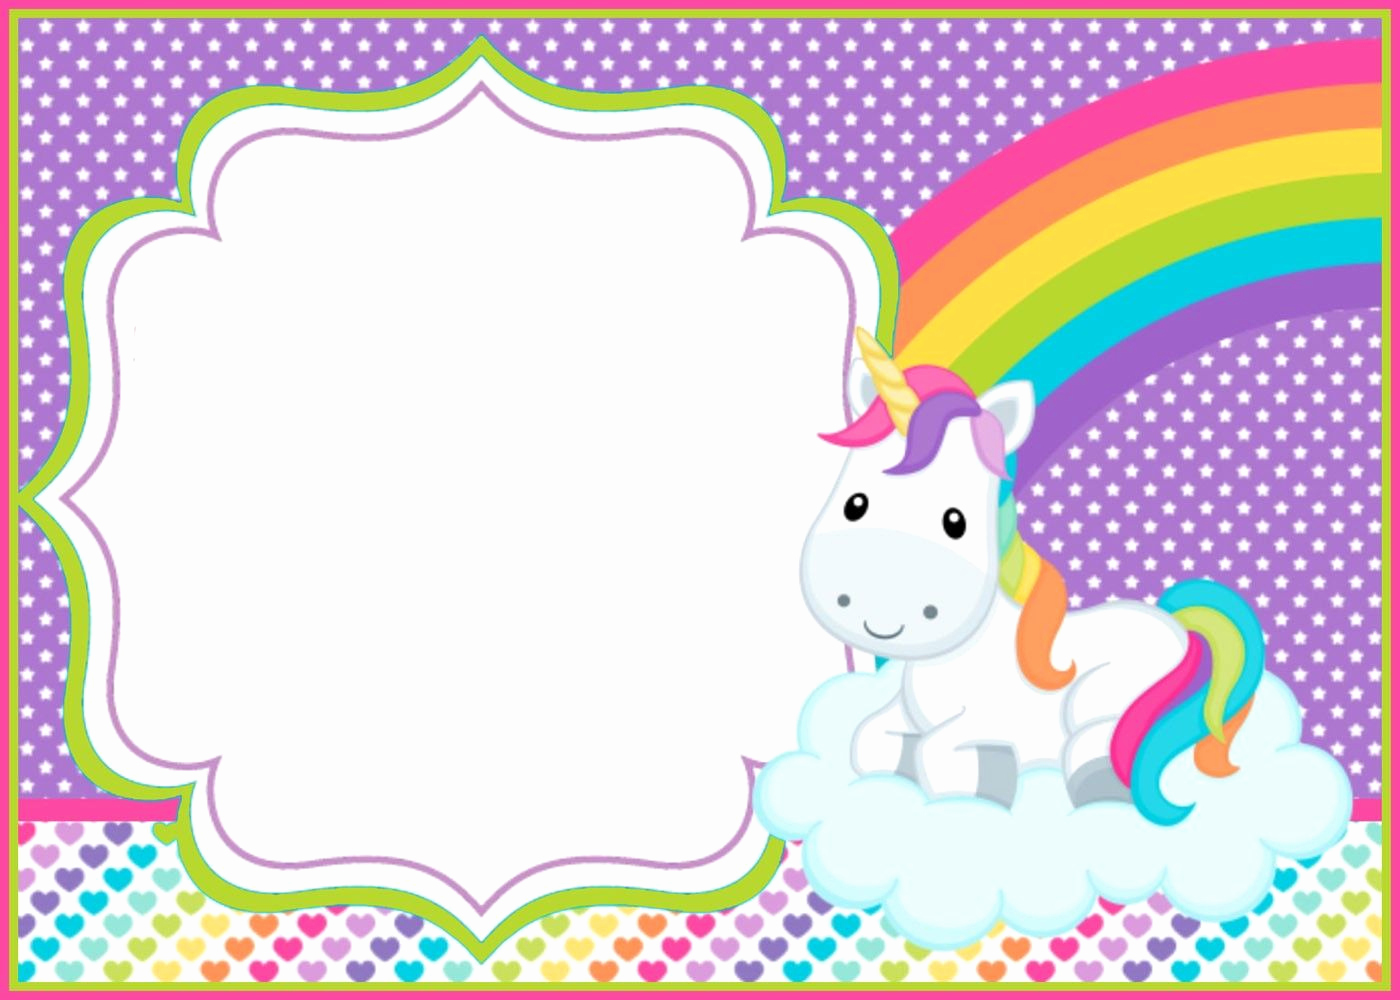 Free Unicorn Invitation Template Elegant Unicorn Template